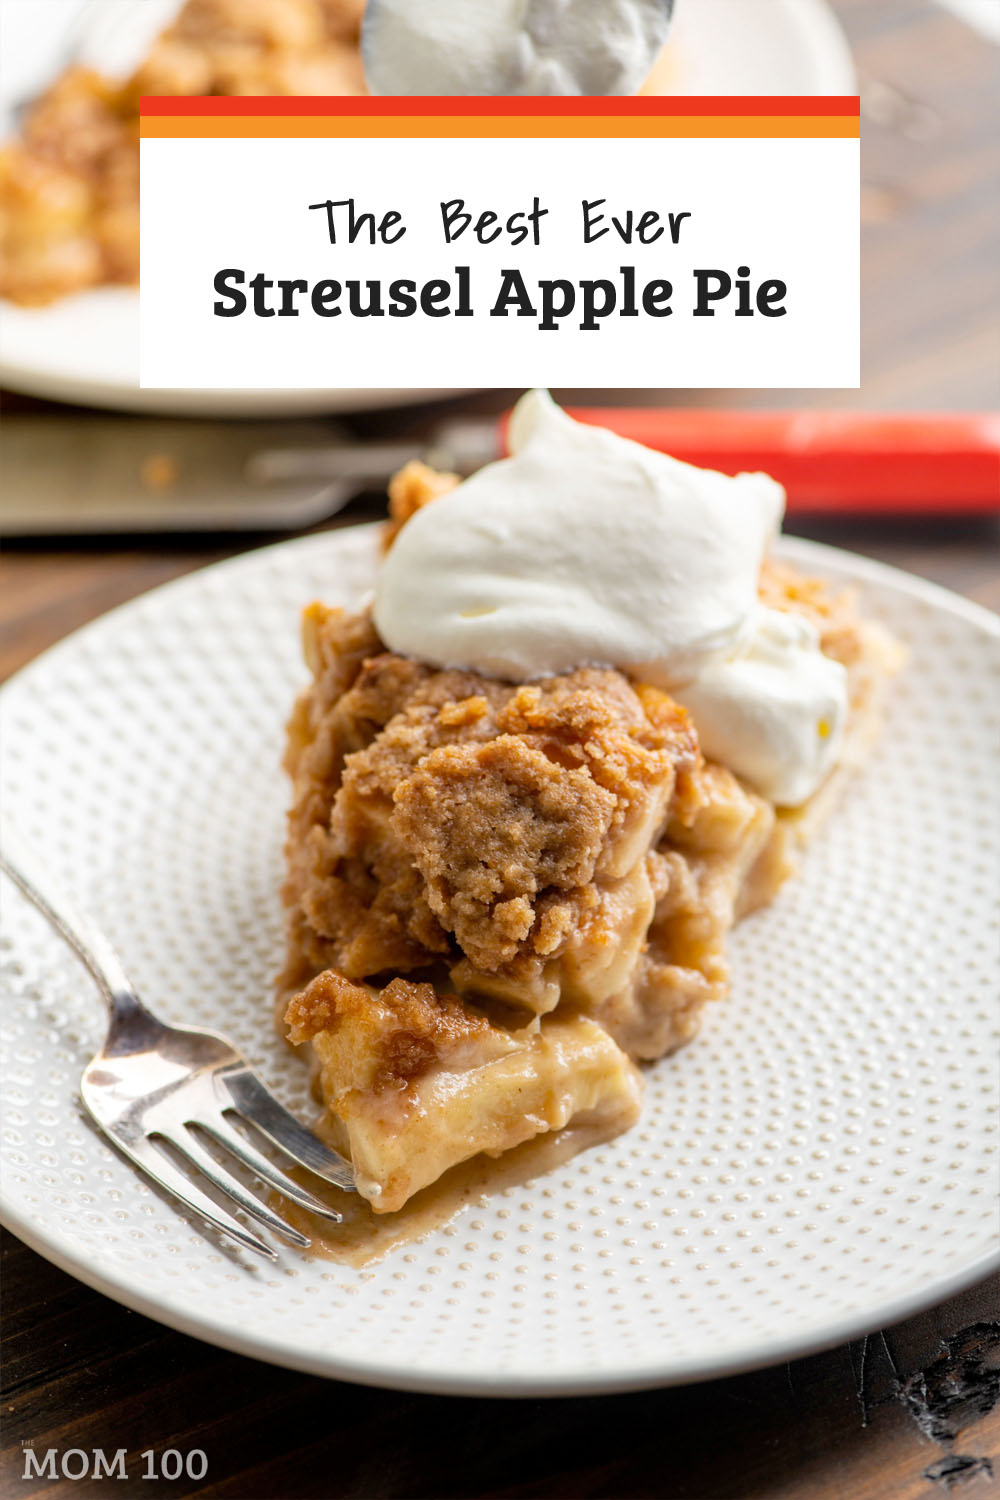 The Best Apple Streusel Pie Recipe Ever:  Sliced apples are blanketed and bound up with a custardy coating, with a thick layer of sweet, crumbly streusel topping.